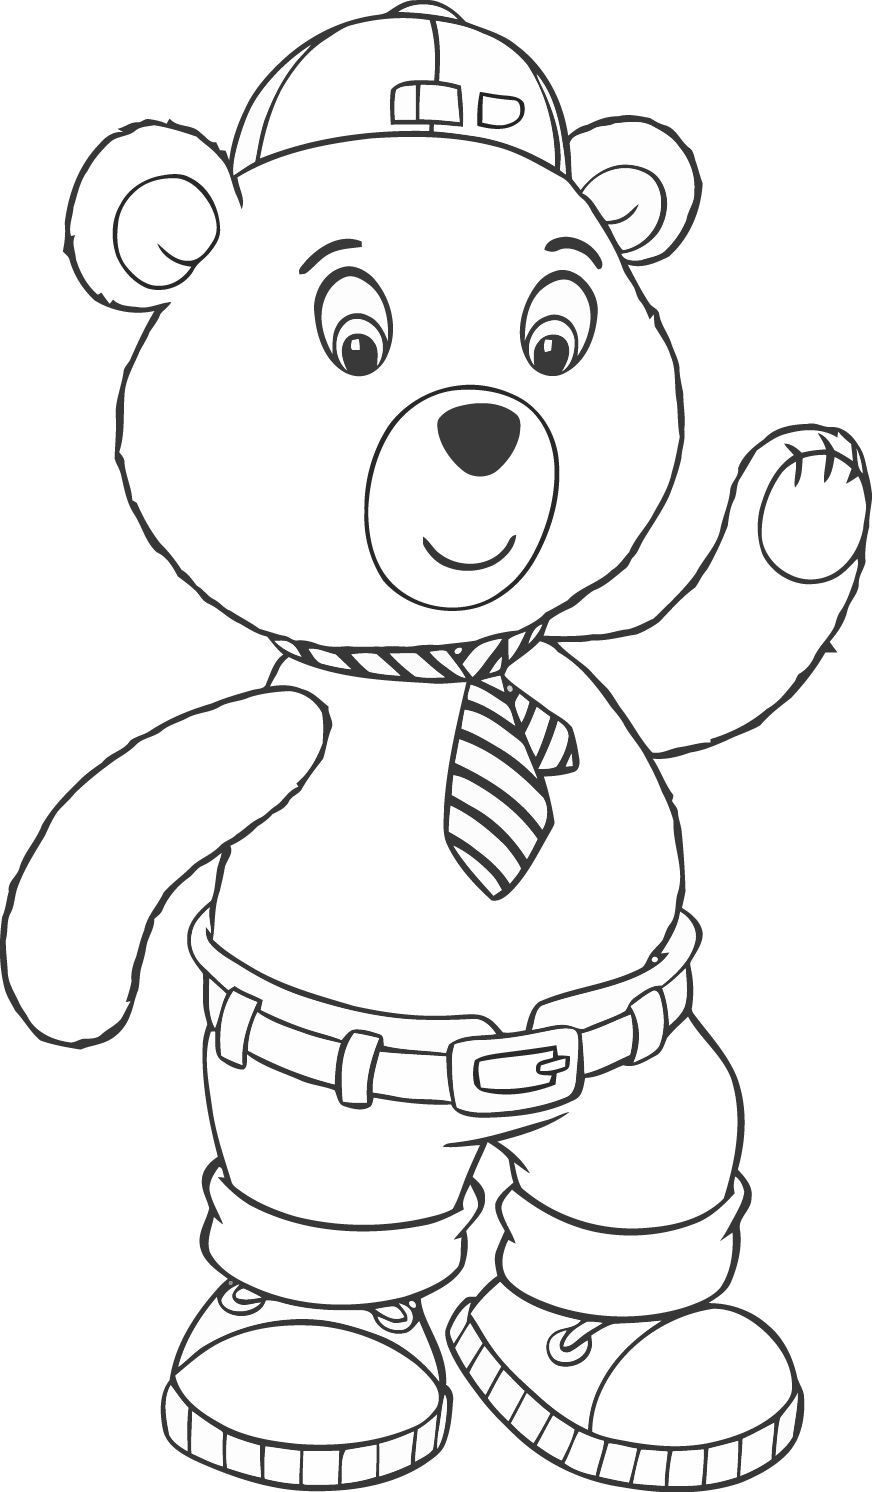 Noddy 99 Mcoloring Coloring Page Mcoloring Infantil Riscos